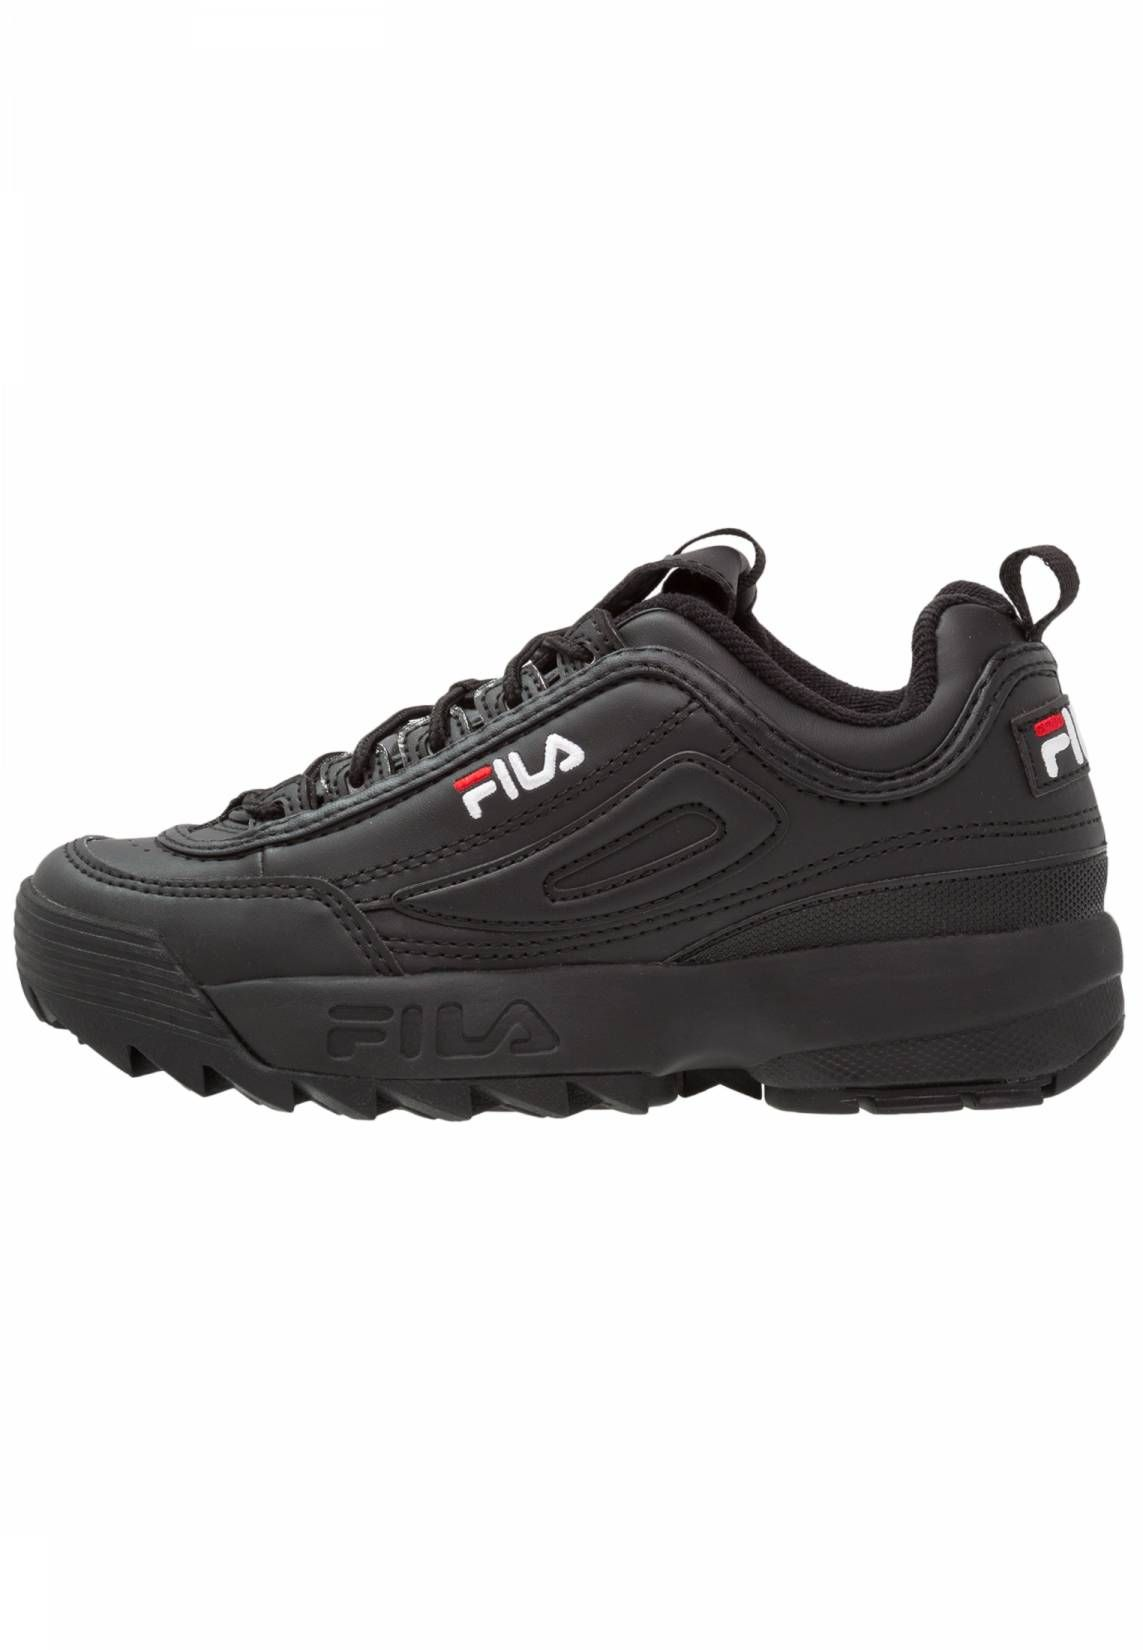 innovative design b1ca1 fdb11 Fila. DISRUPTOR LOW - Zapatillas - black. Suela fibra sintética. Forma del